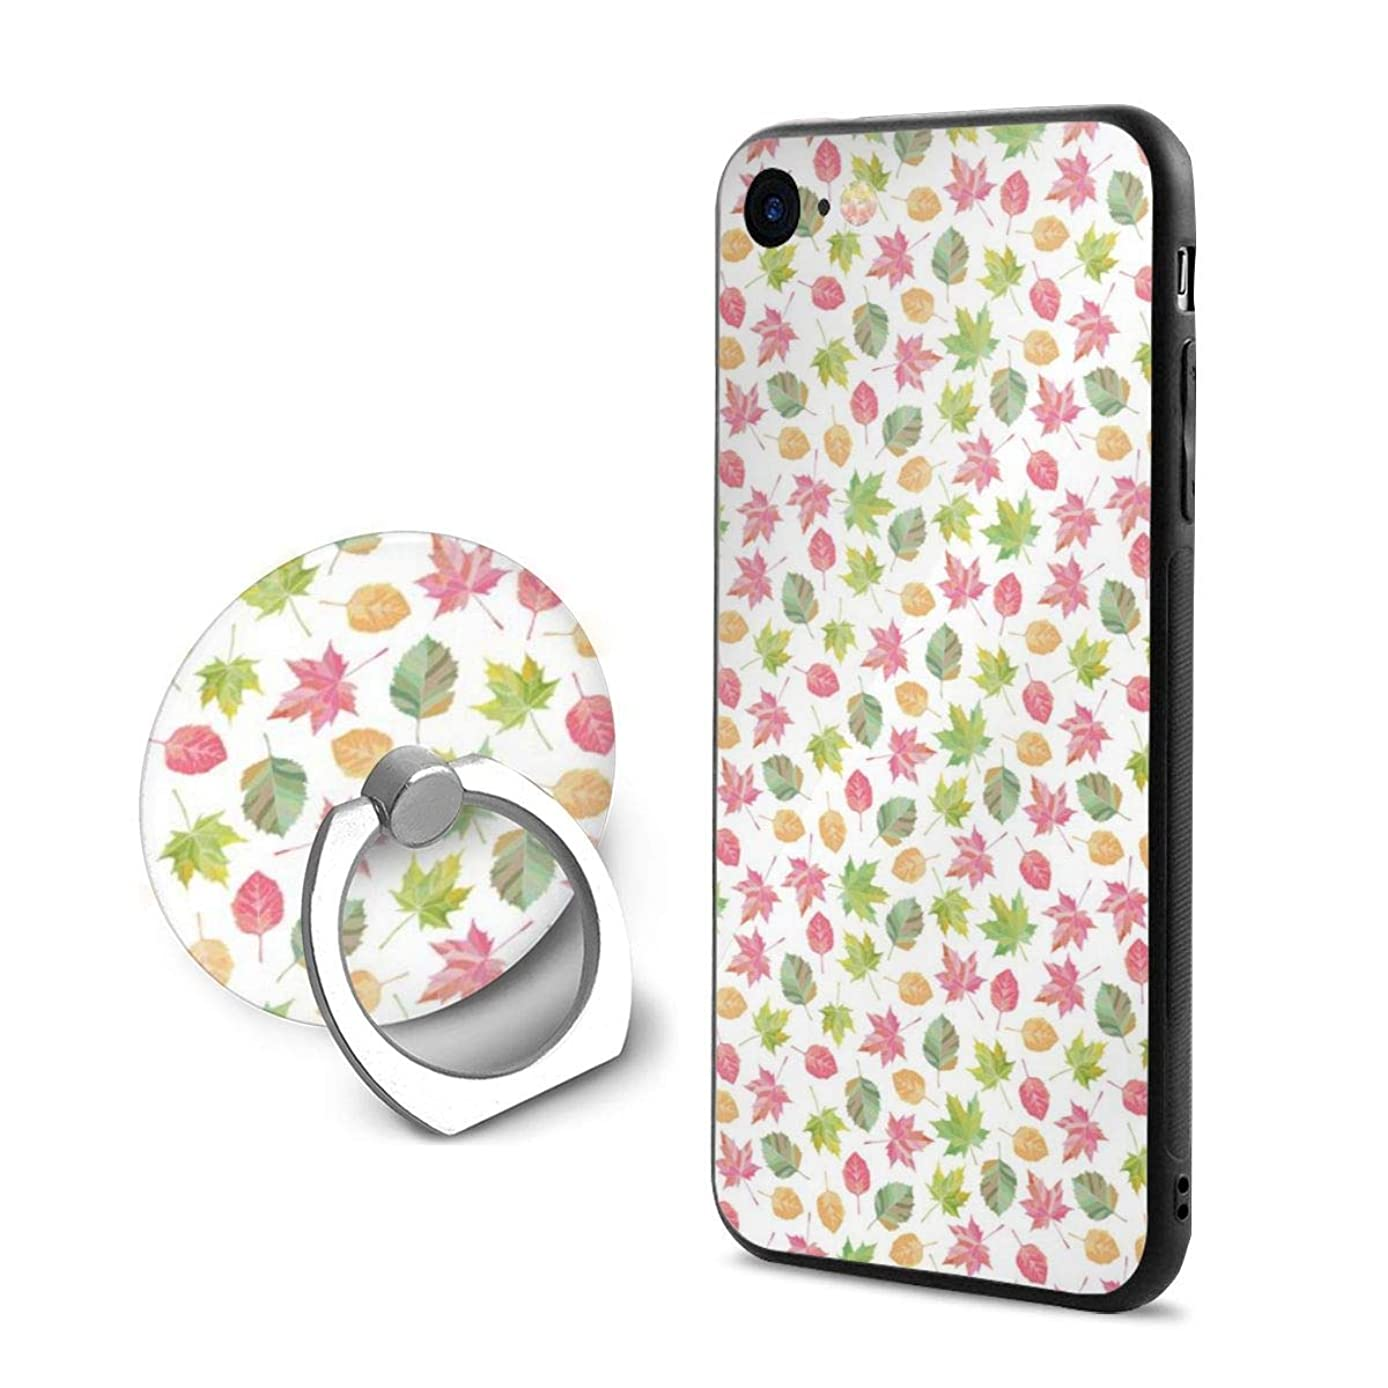 iPhone 7/8 Case Fall Leaves Pattern Vector 360 Degree Rotating Ring Kickstand Case for iPhone 7/8